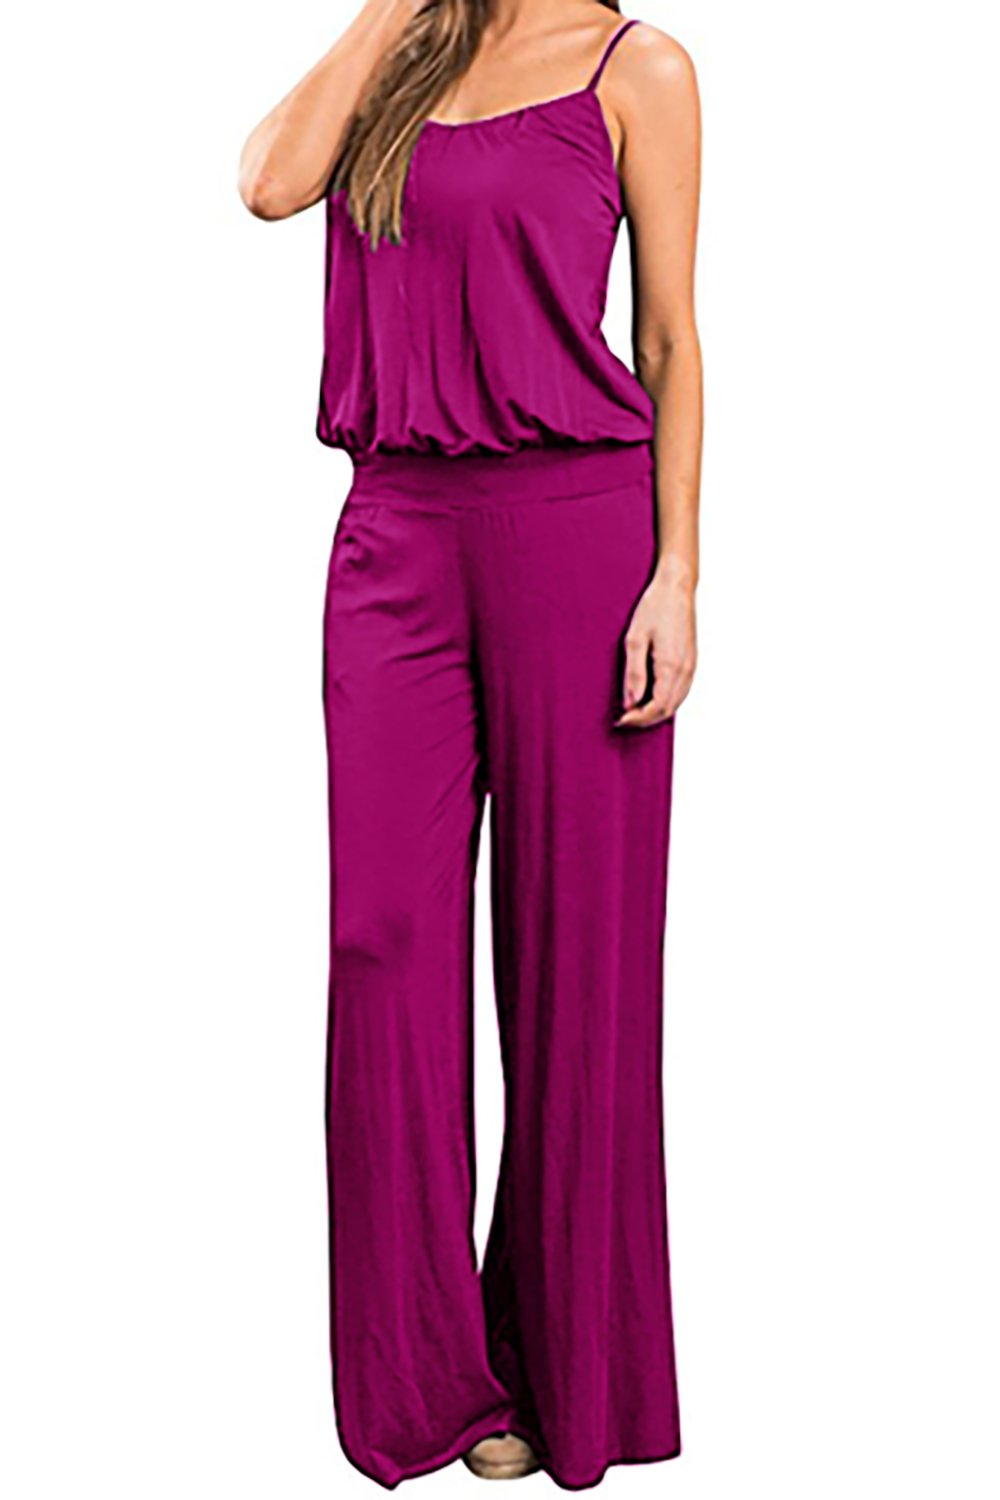 Womens Jumpsuits Wide Leg Cotton Loose Sleeveless Strap Elastic Waistband Jumpsuit Rompers (Small, Rose)